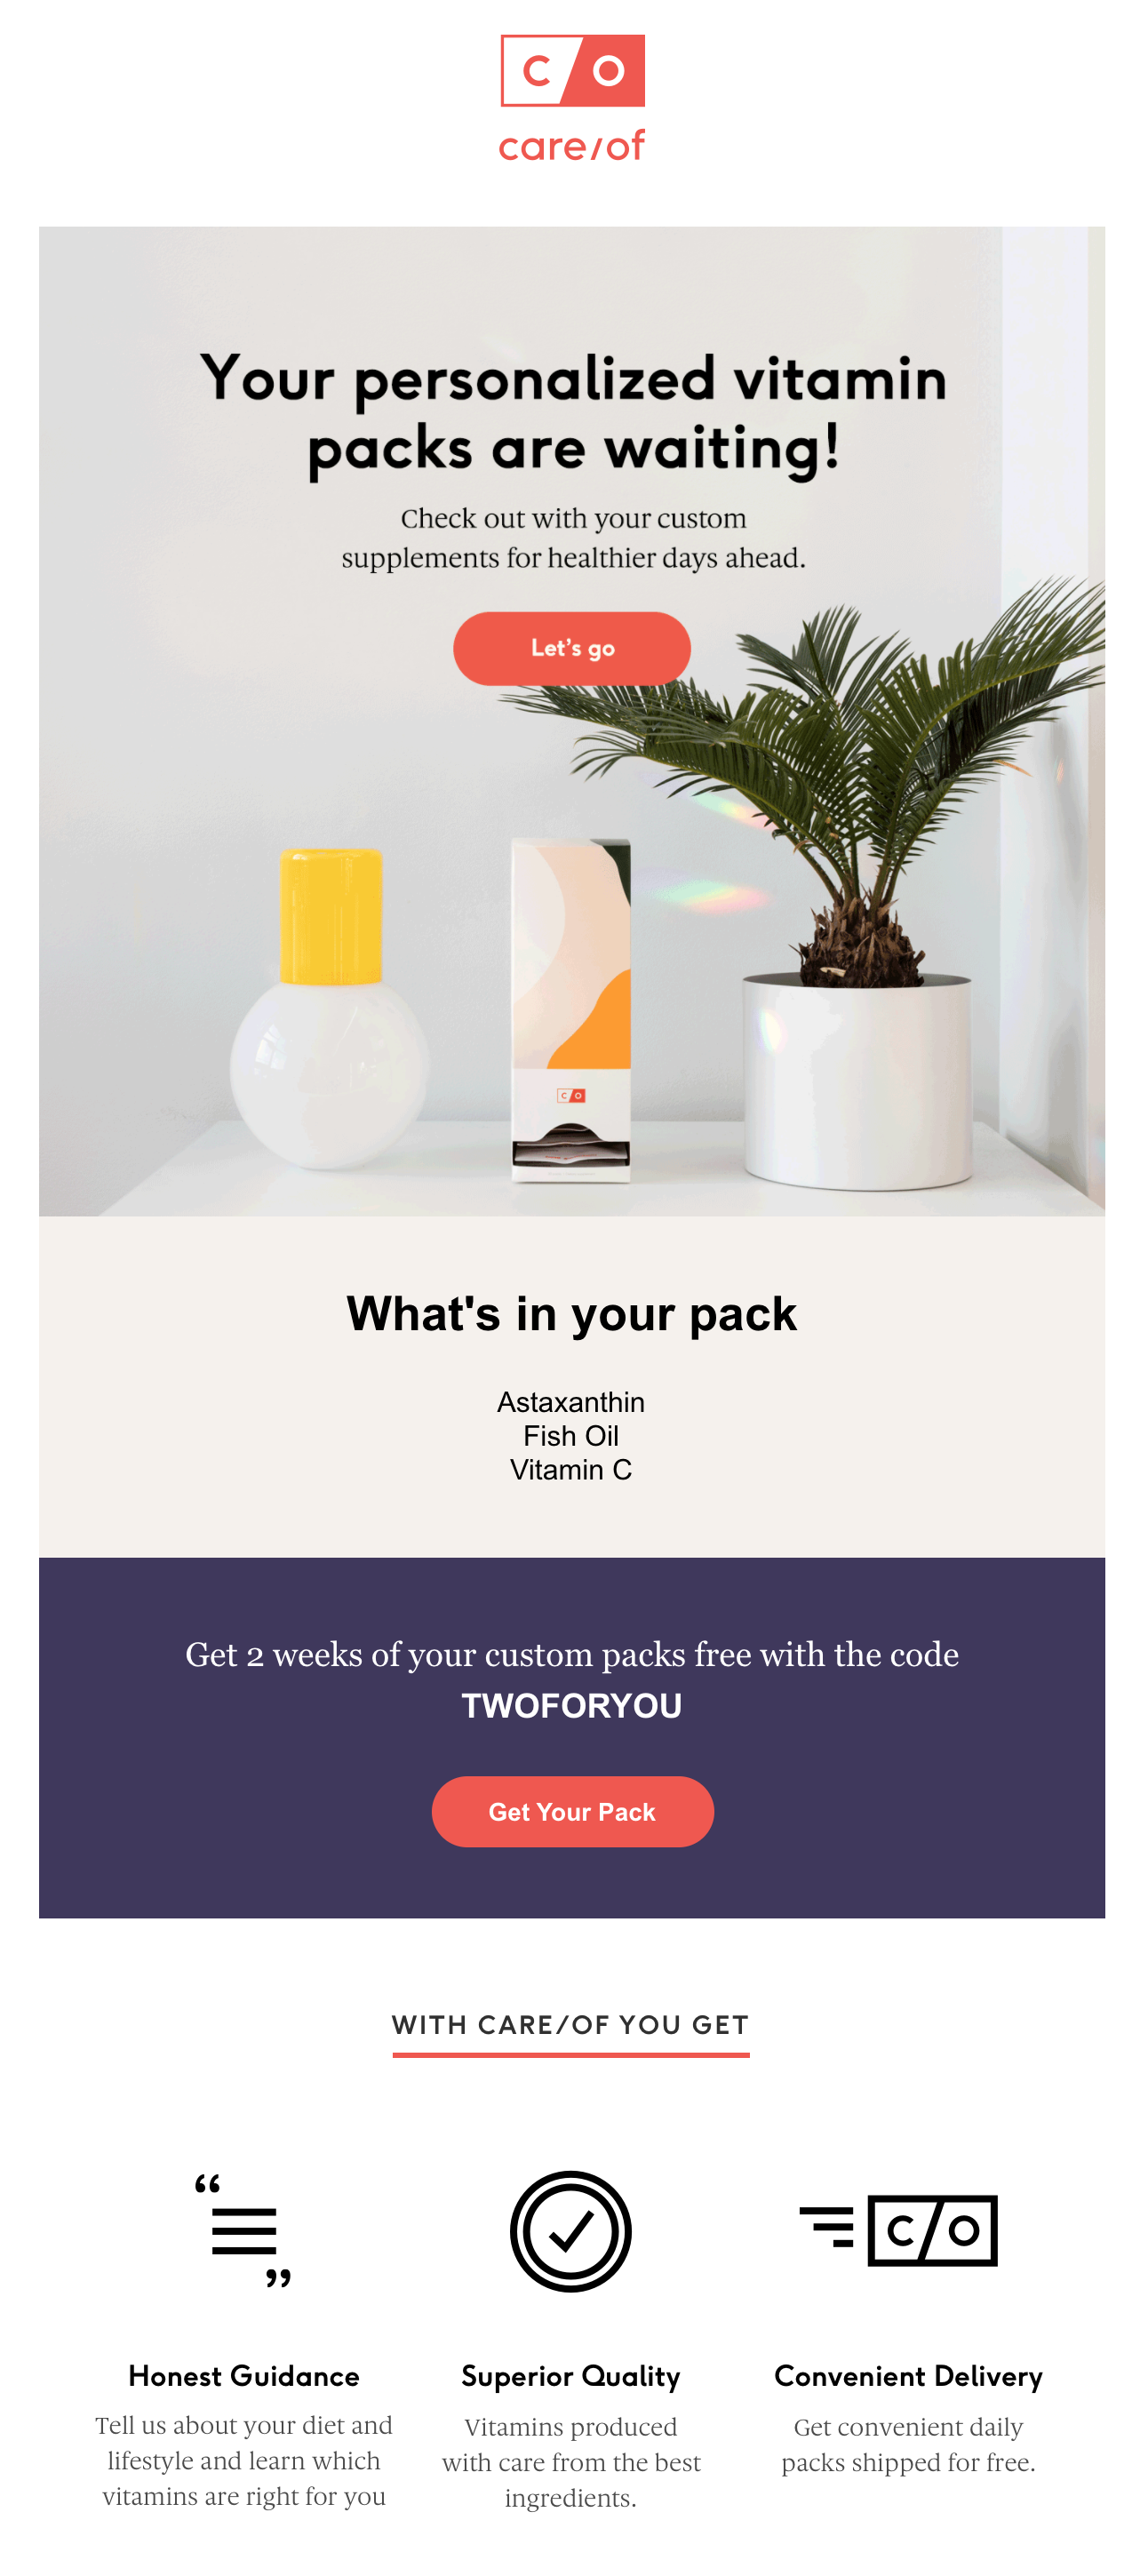 Screenshot of a welcome email with a welcome gift.